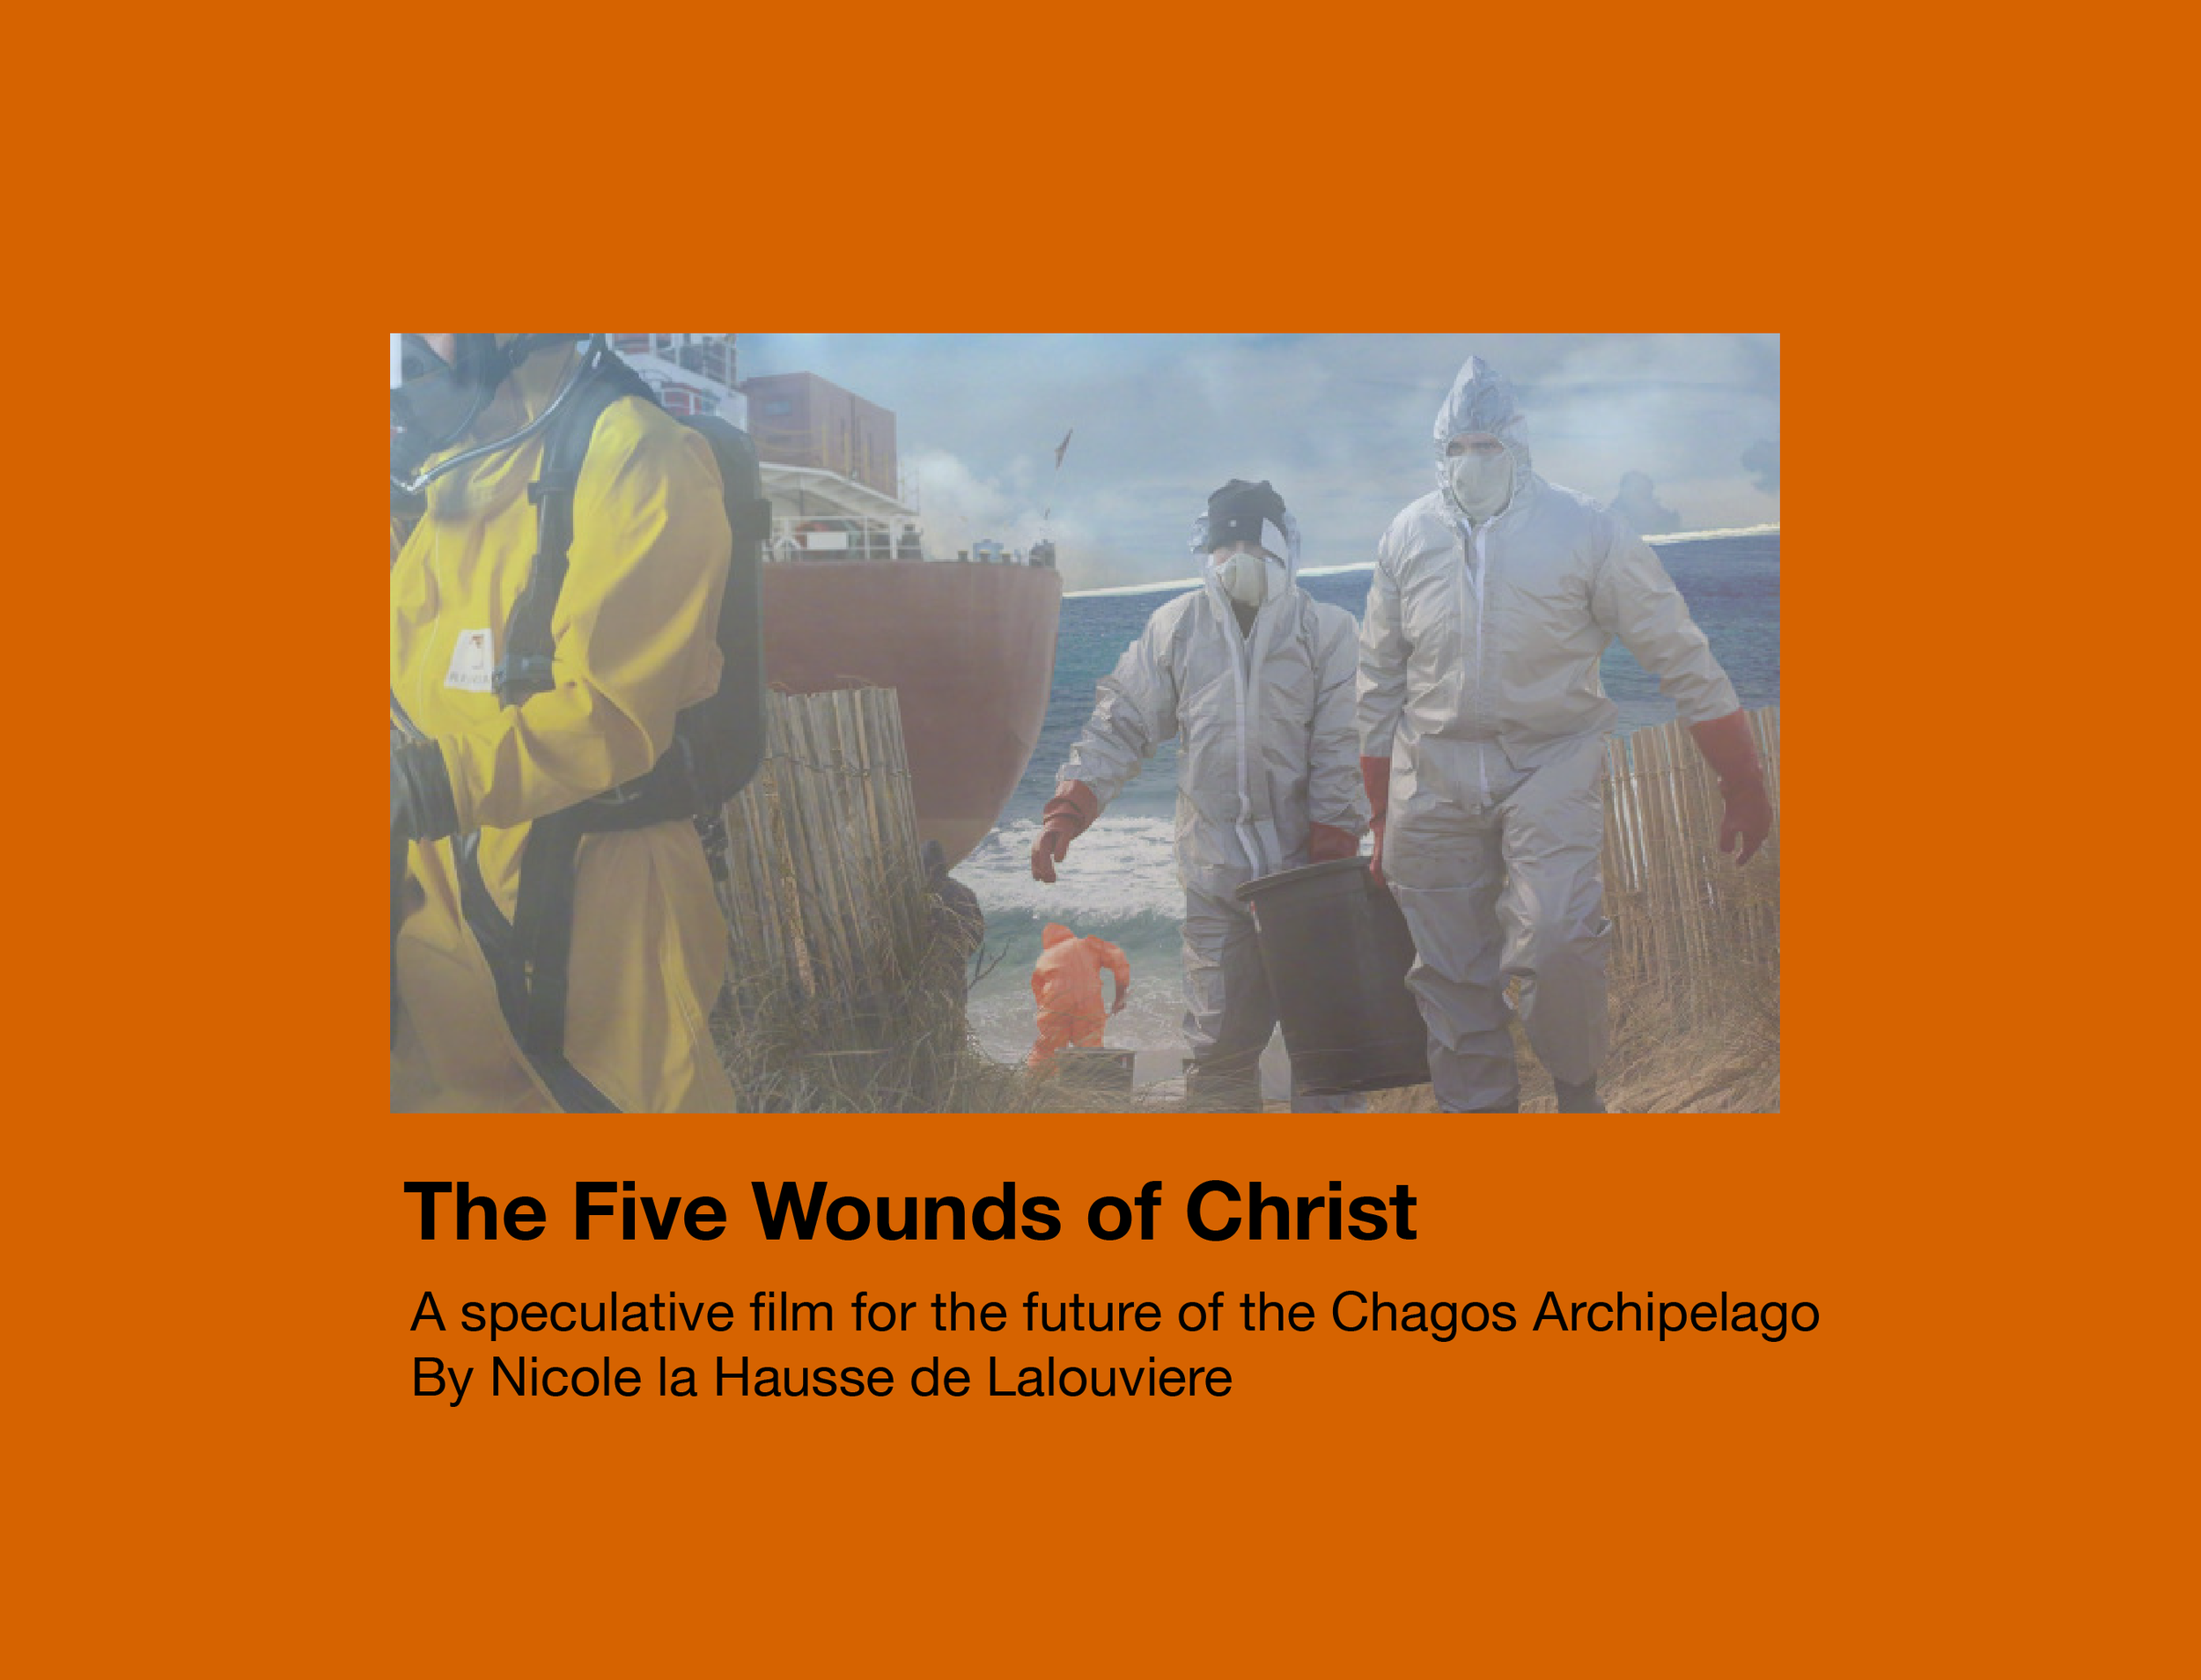 The Five Wounds of Christ